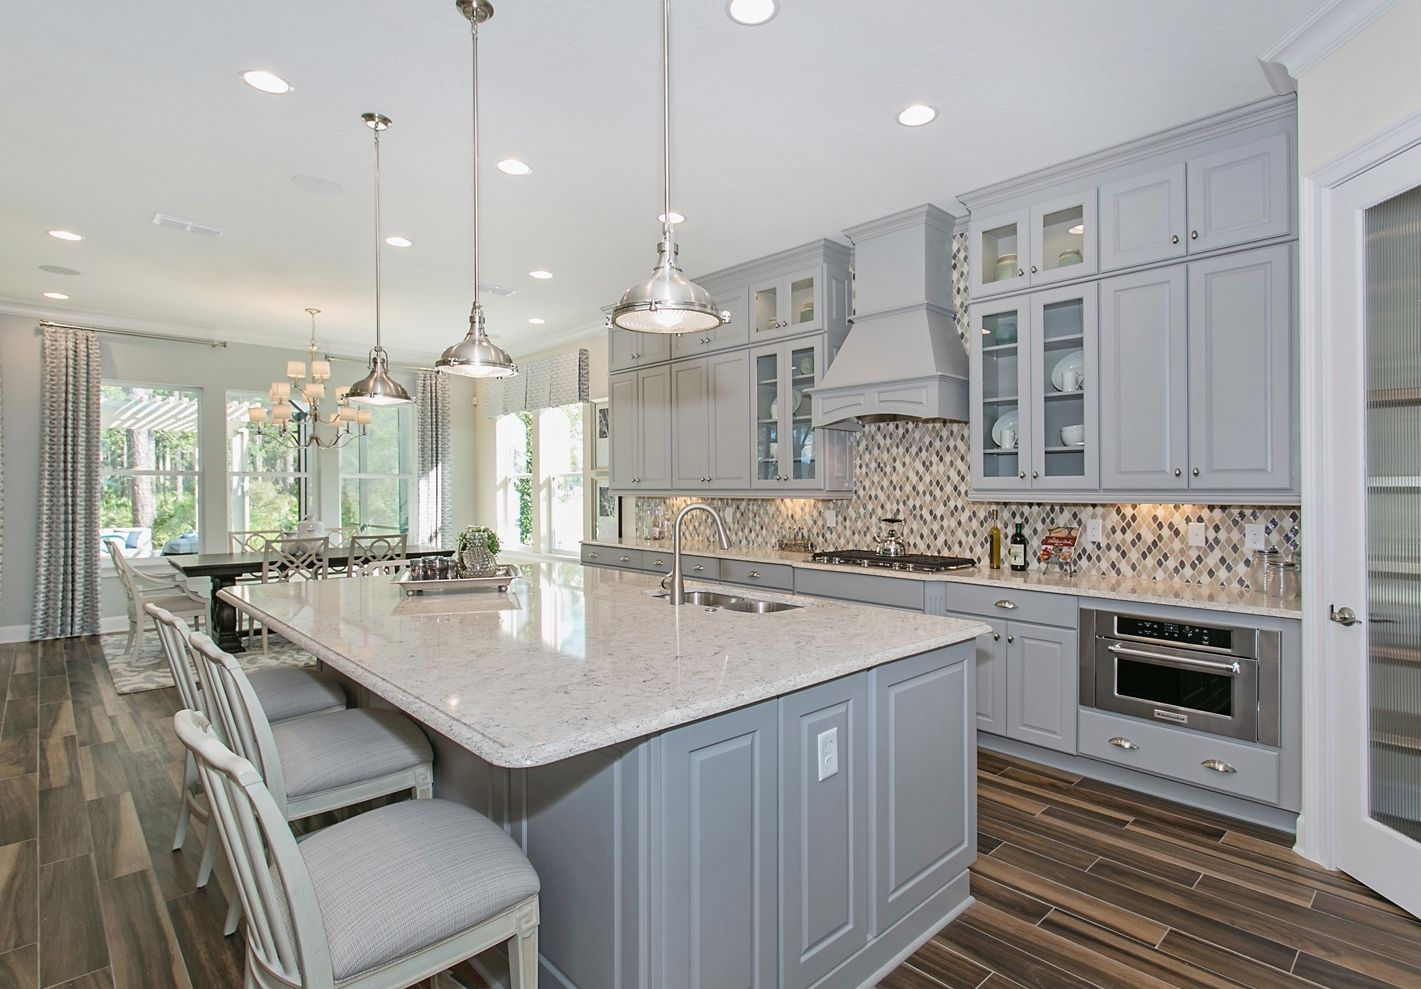 Calatlantic Homes In Twenty Mile Village Grove Kitchen Award Winning Model Homes Of Nocatee